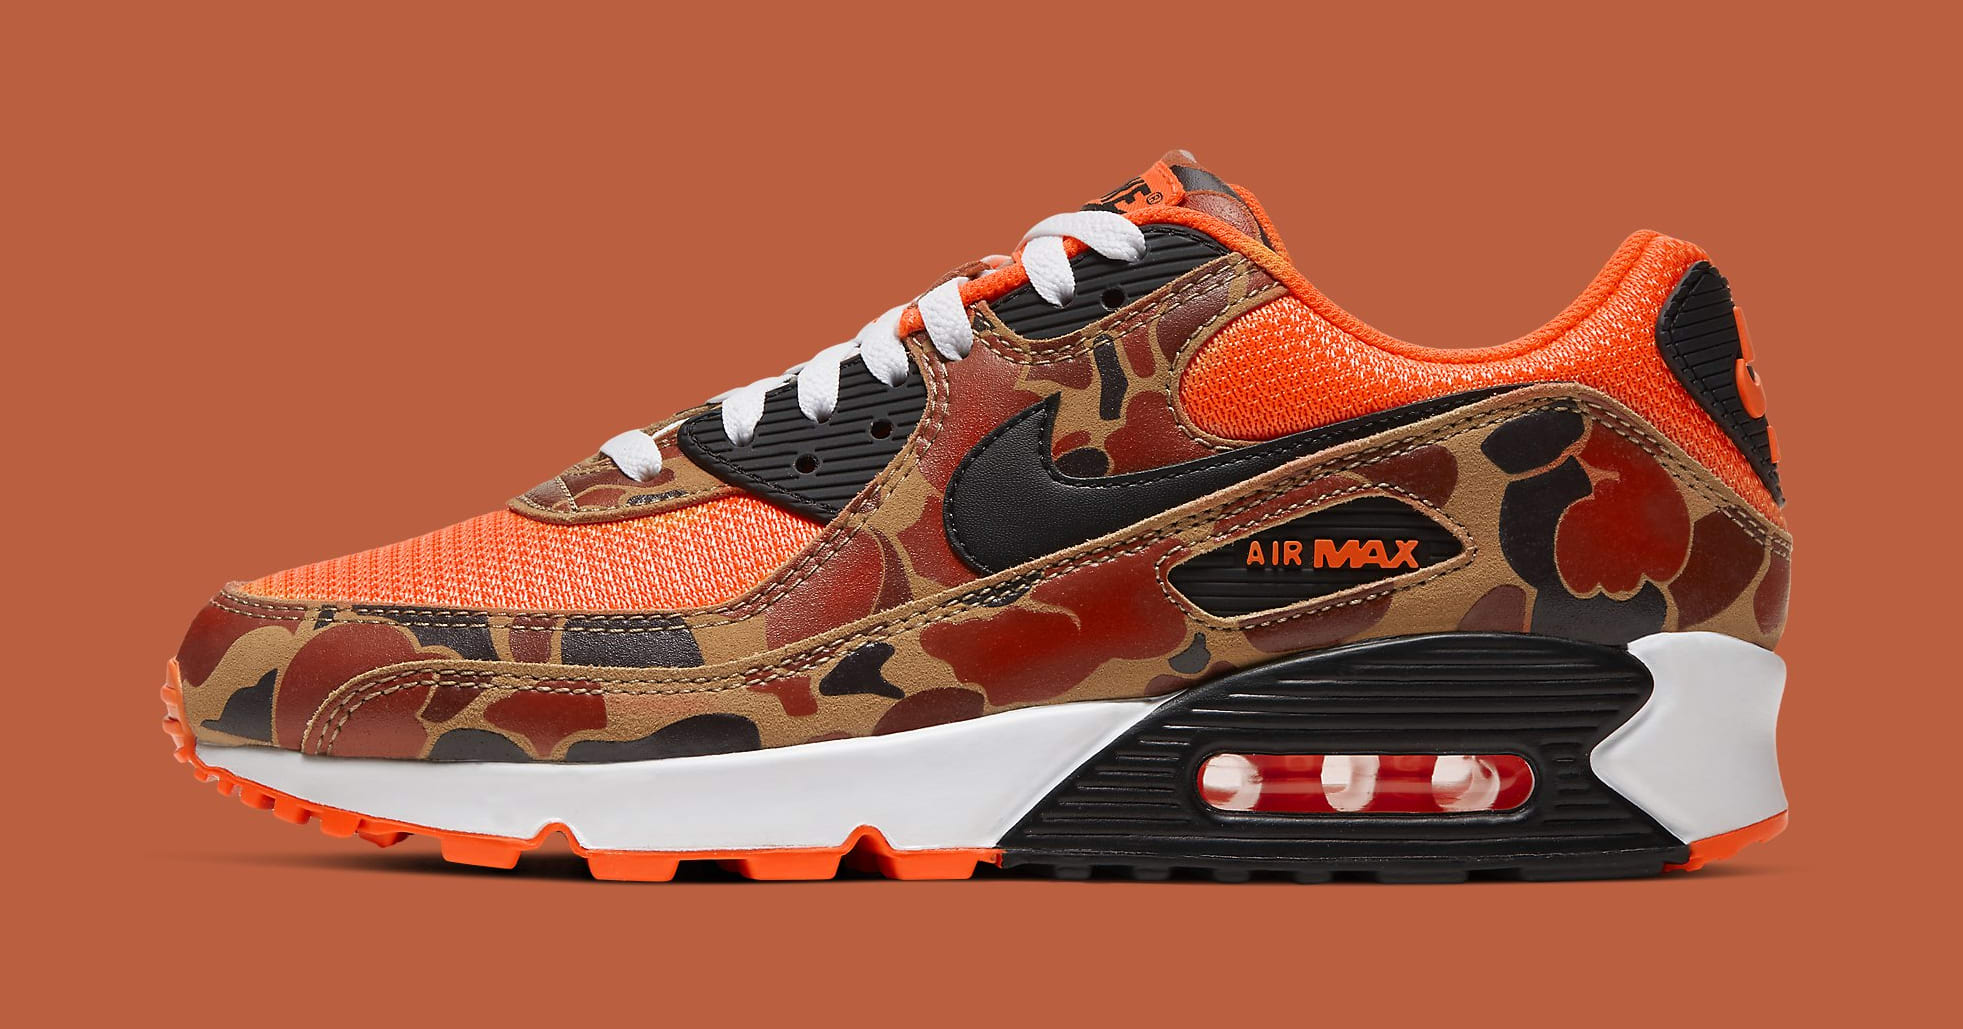 Nike Air Max 90 'Orange Camo' CW4039-800 Lateral